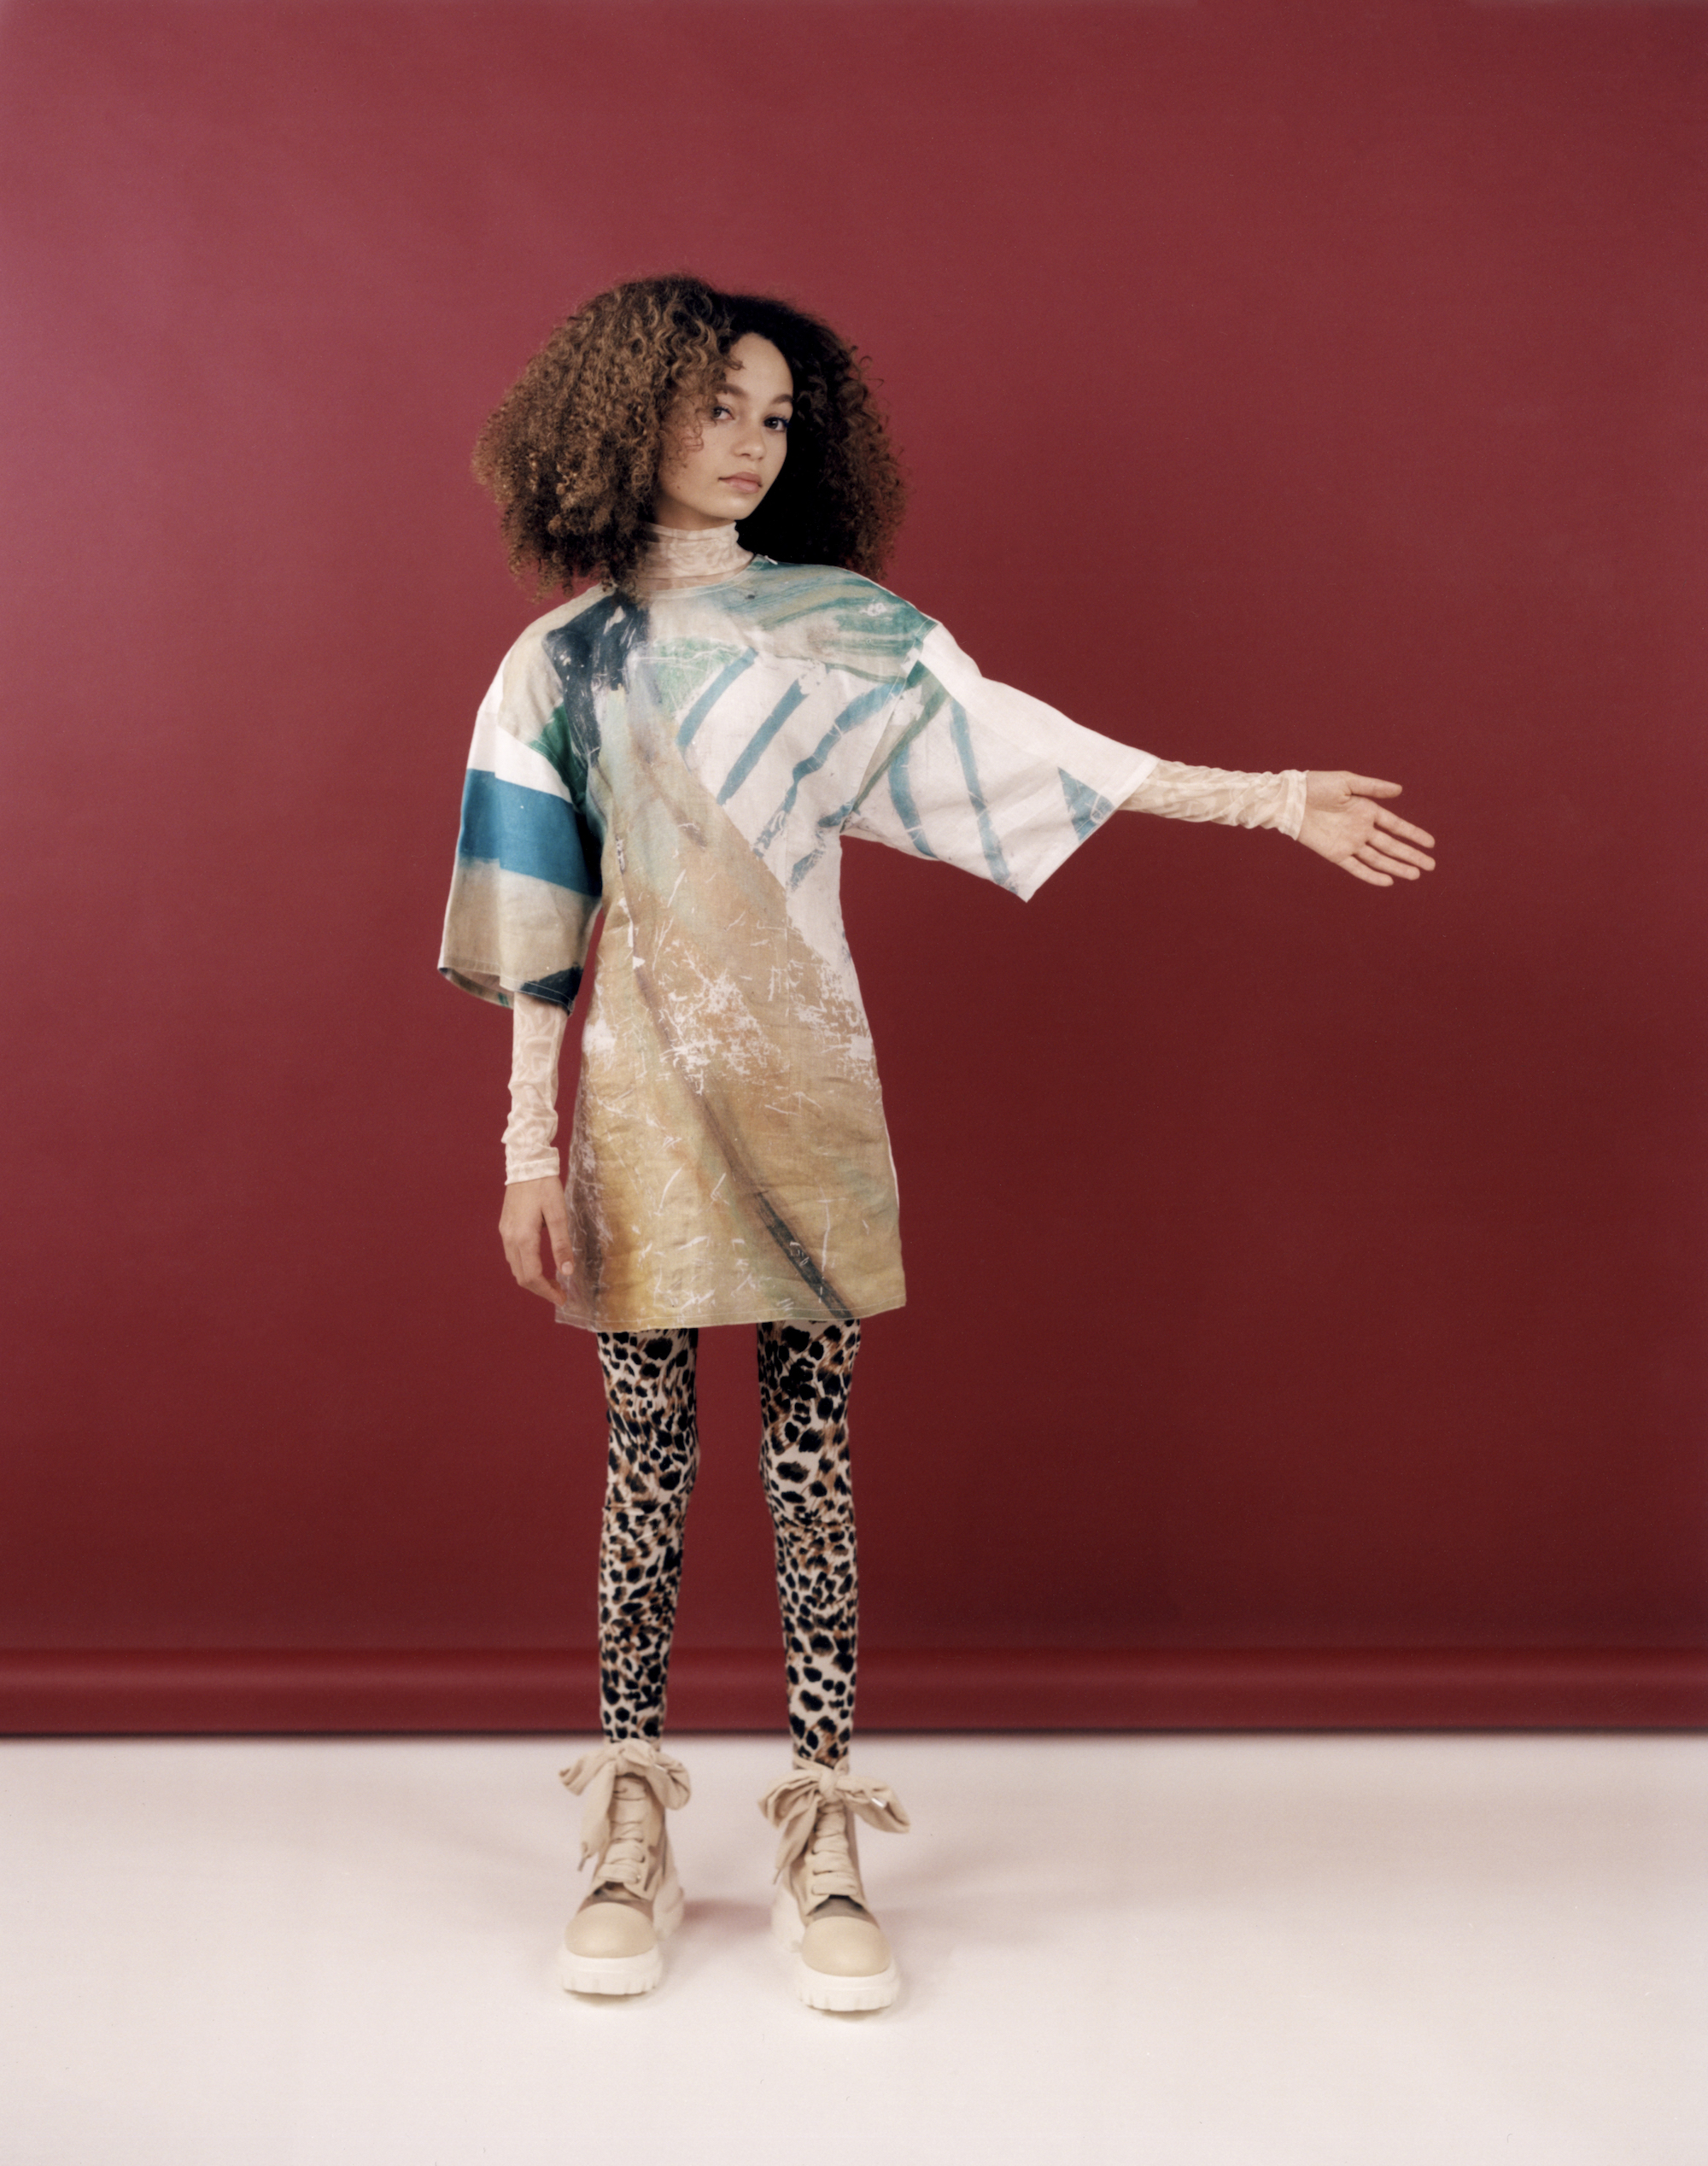 Thandie Newton's daughter Nico Parker, star of Dumbo in Wonderland's Spring 19 issue in abstract dress